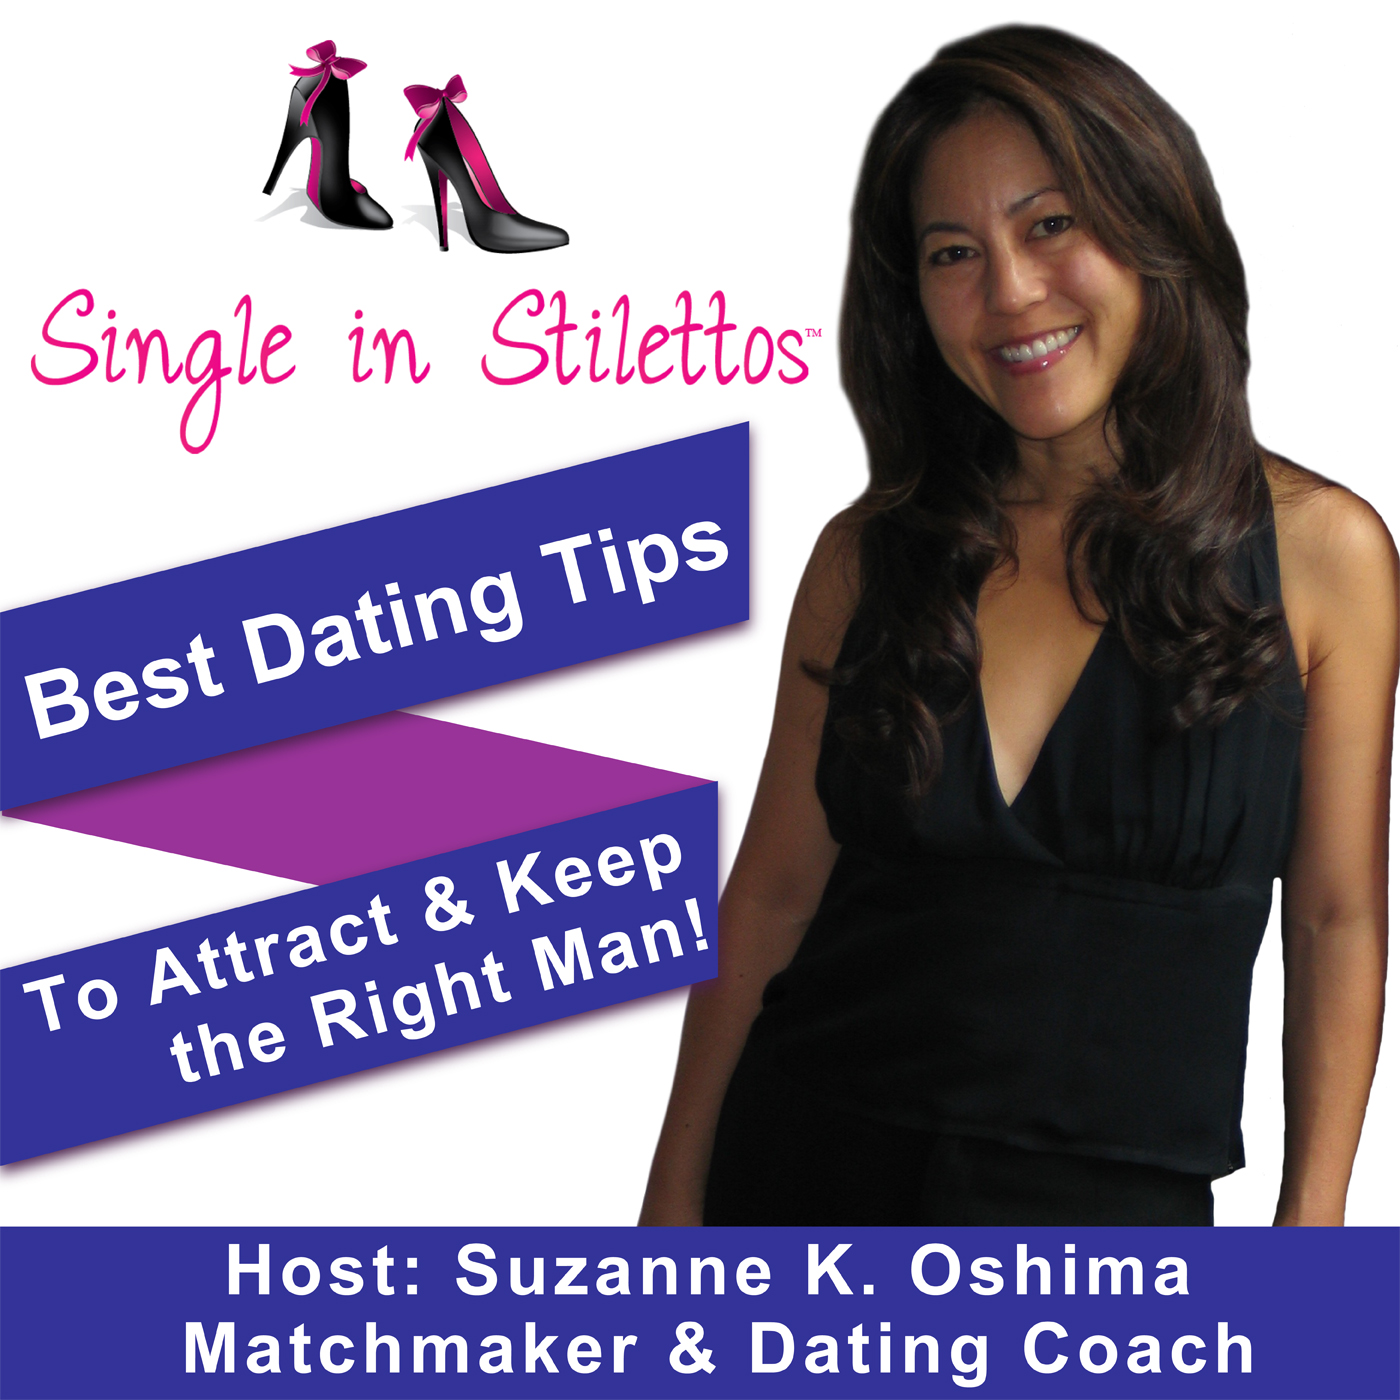 Tips for dating a divorced woman